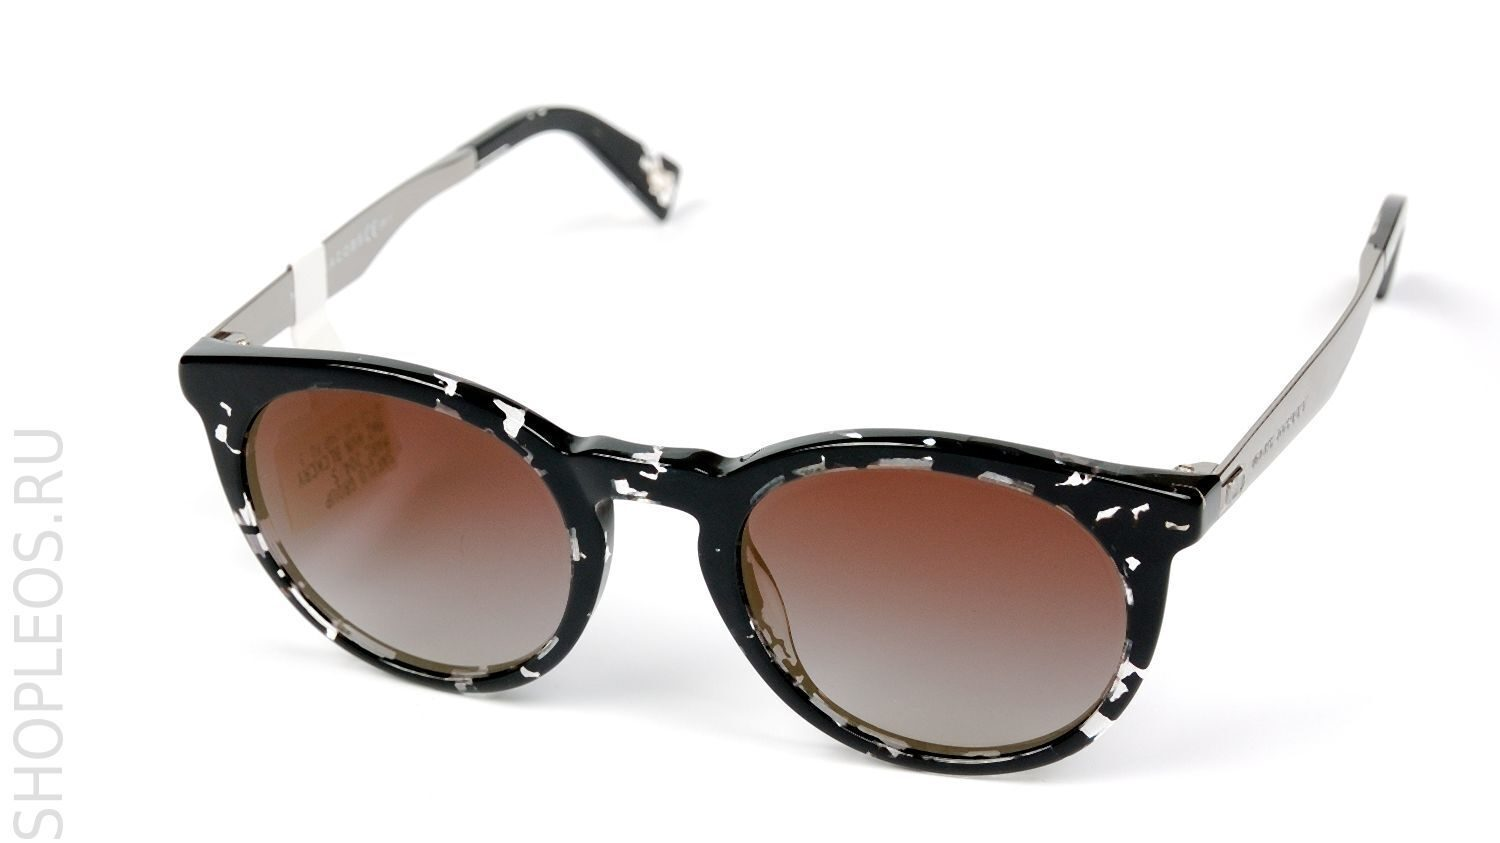 MARC JACOBS WOMAN MARC 204/S 9WZ